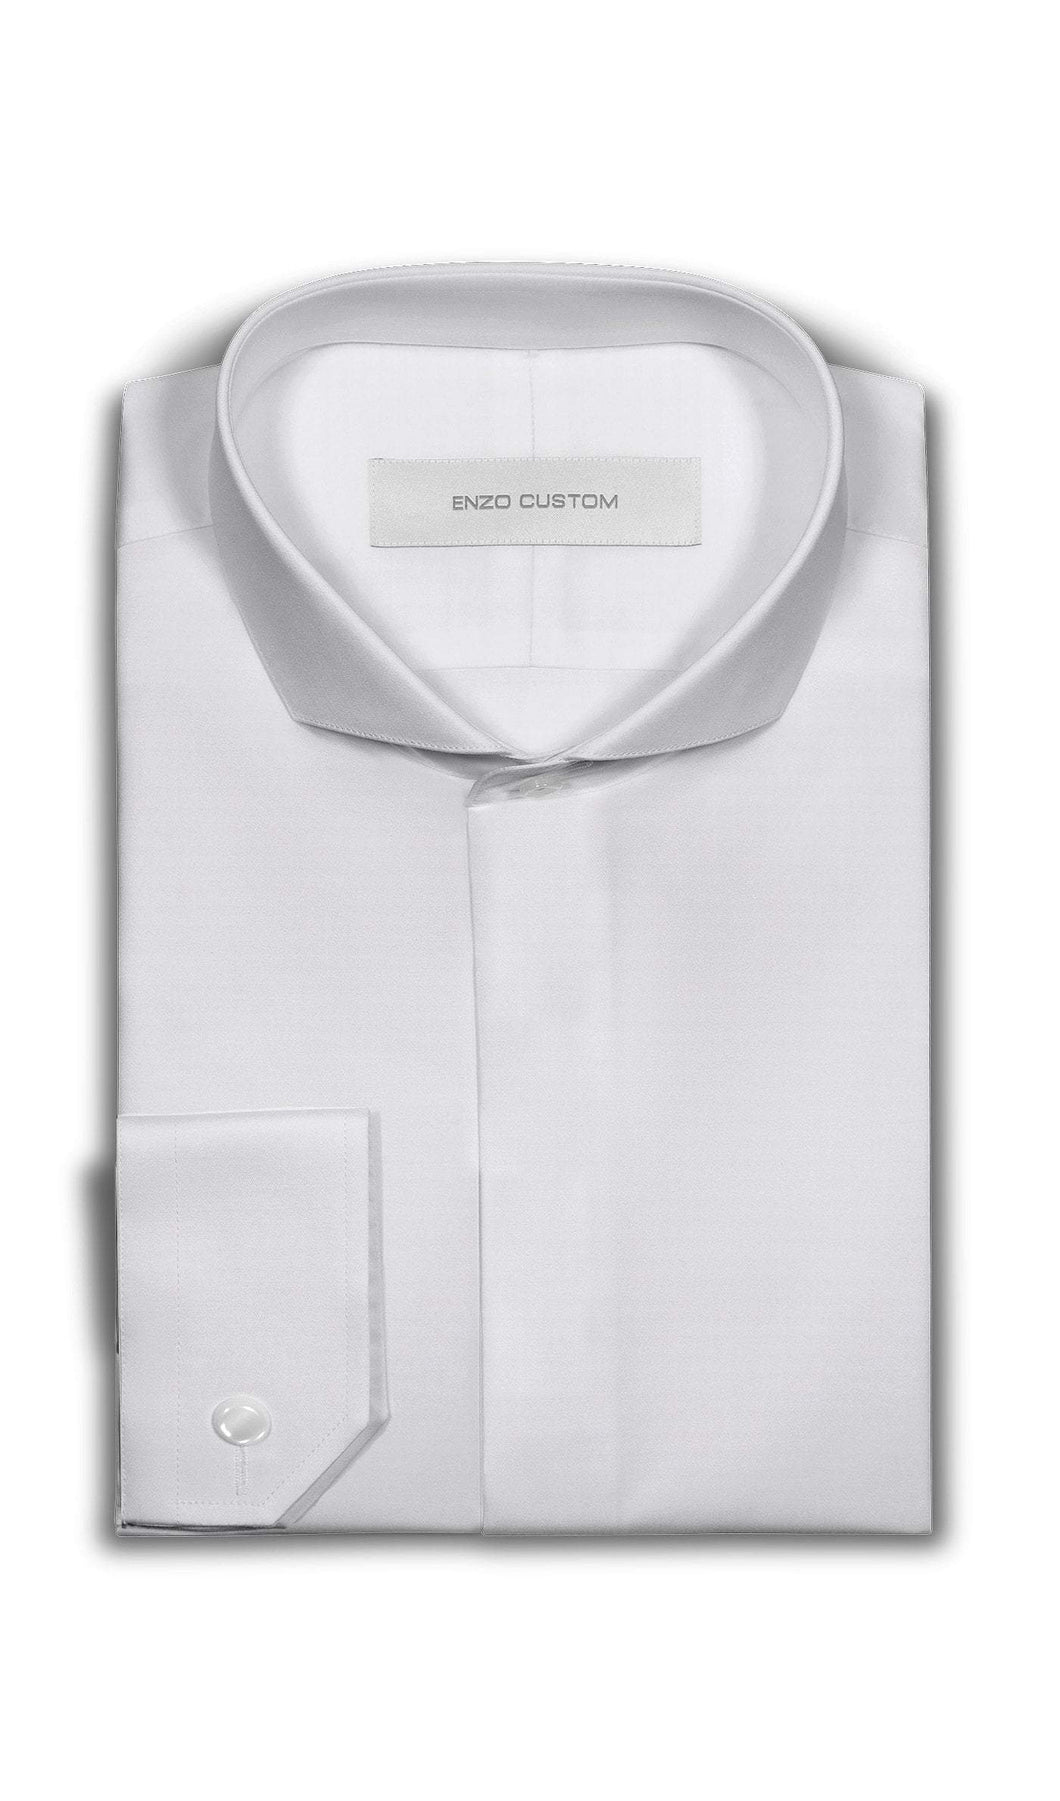 Signature Shirt Wedding Party Shirt #3